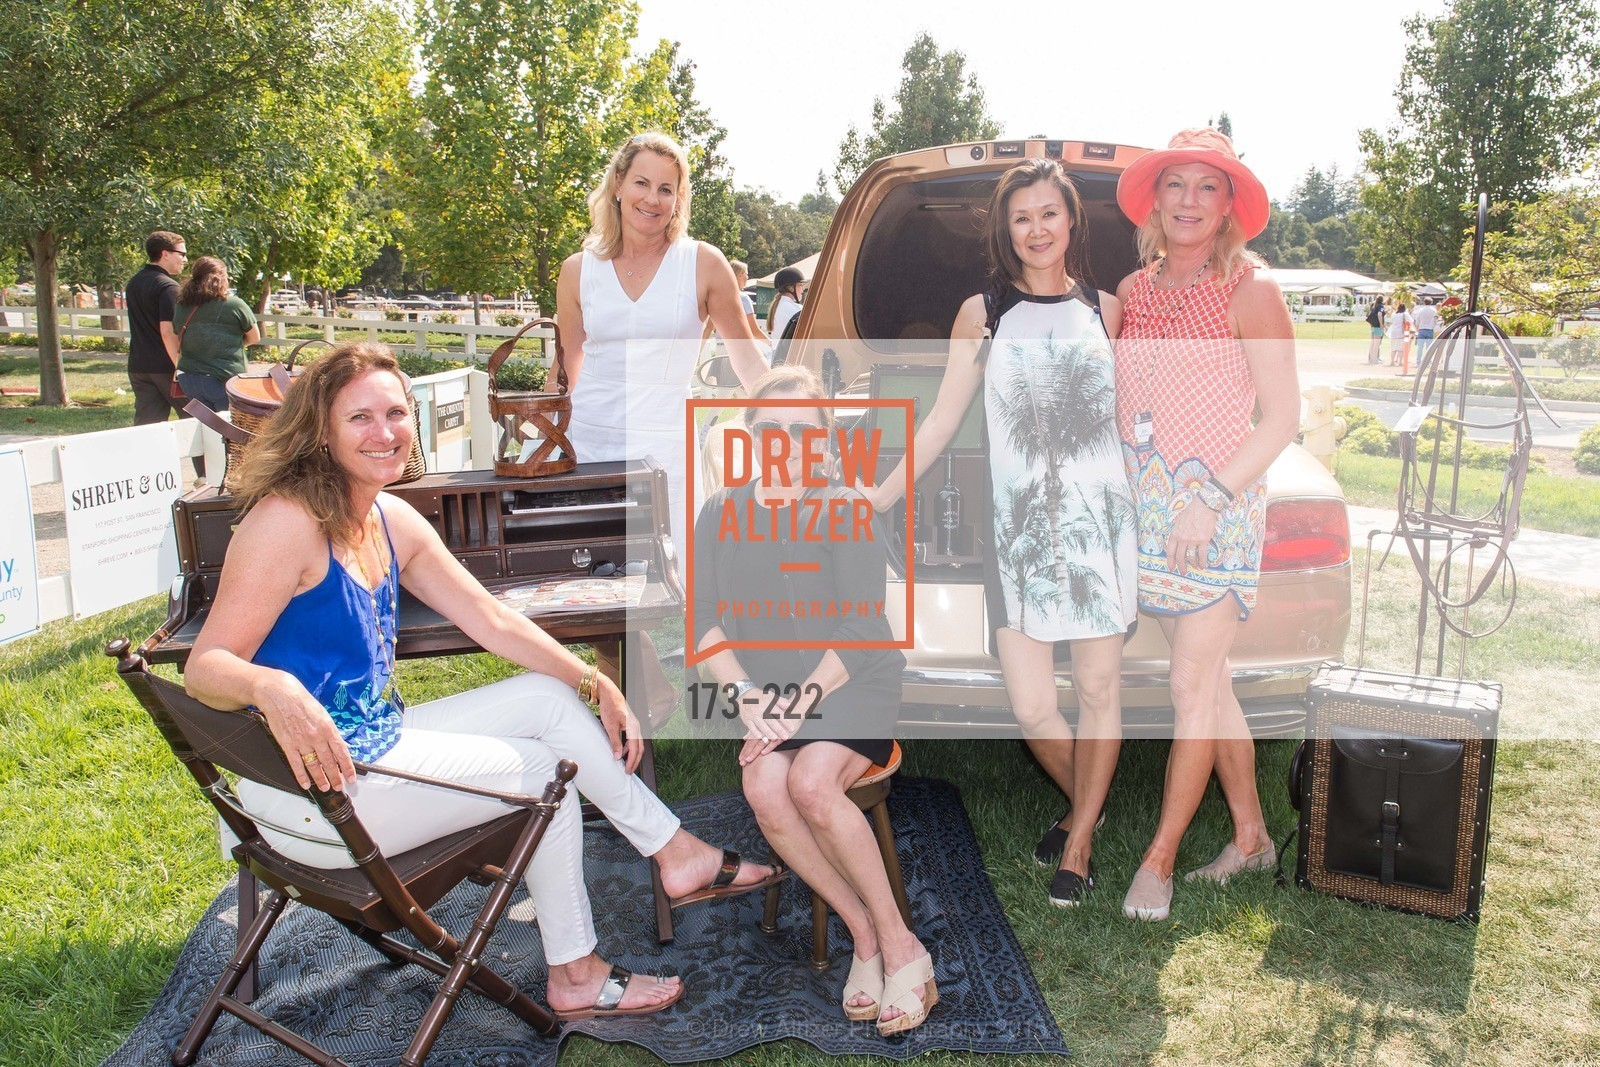 Suzanne Rischman, Catherine Harvey, Cerri Guthrie, Lavinia Branden, Jen McDonald, Bentley Tailgate Party Benefiting the Menlo Charity Horse Show, Menlo Circus Club, August 8th, 2015,Drew Altizer, Drew Altizer Photography, full-service agency, private events, San Francisco photographer, photographer california